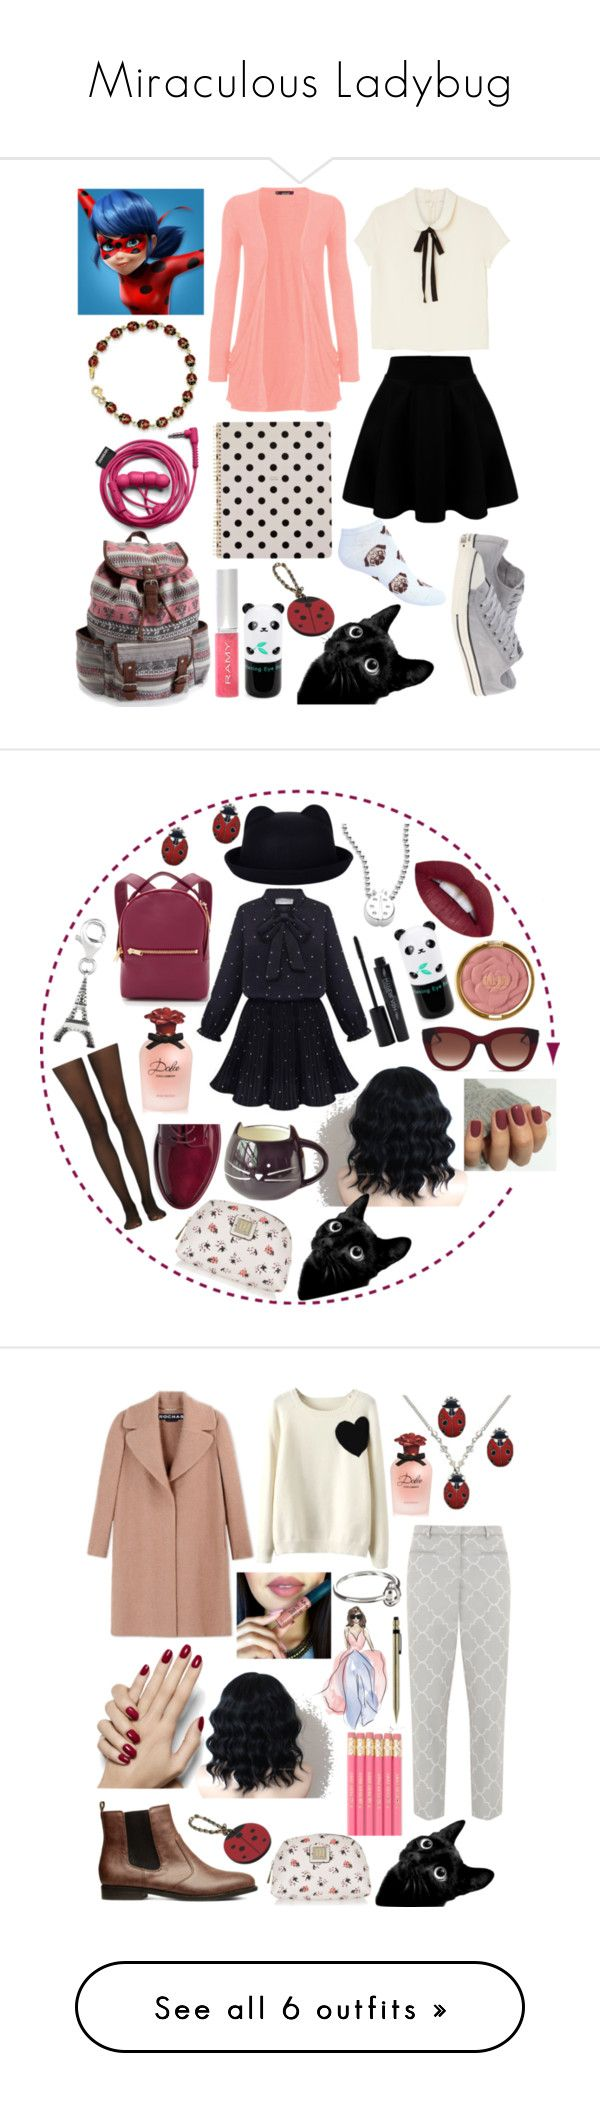 """""""Miraculous Ladybug"""" by foojtan on Polyvore featuring moda, WearAll, Monki, Converse, Kevin Jewelers, Aéropostale, Tony Moly, Hermès, Kate Spade i outfit"""